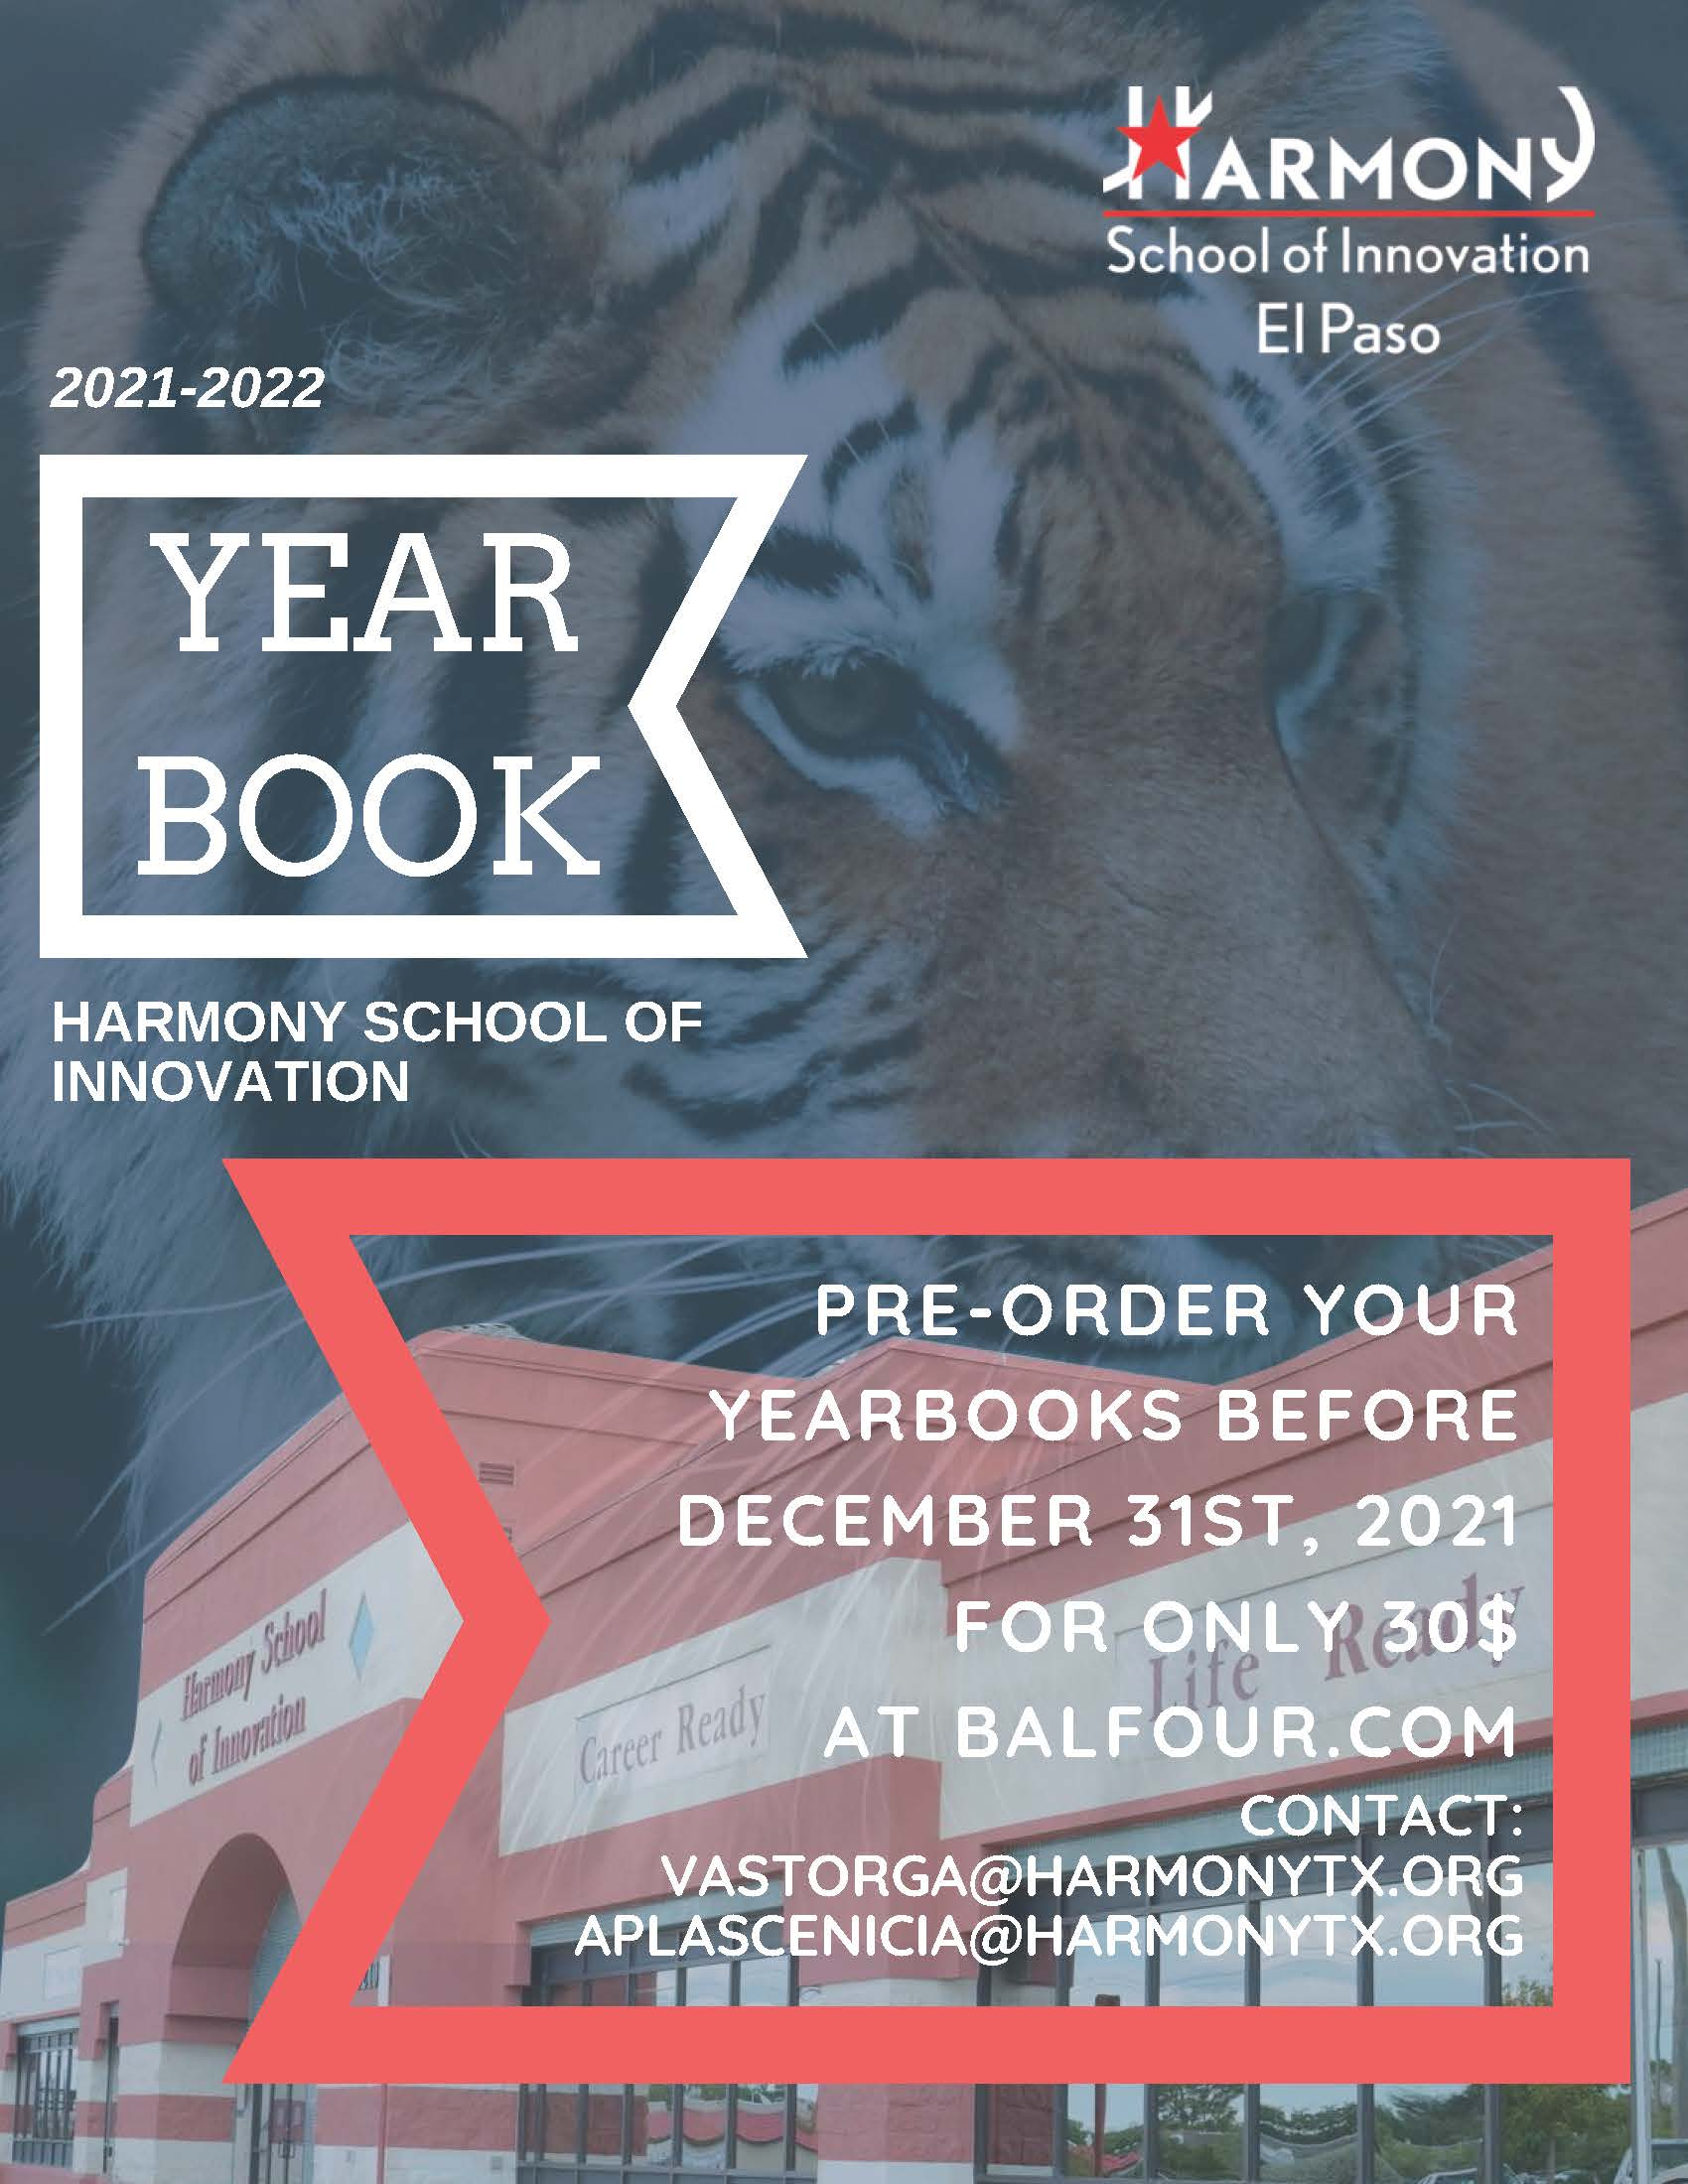 An image of the 2021 yearbook pre-order flyer